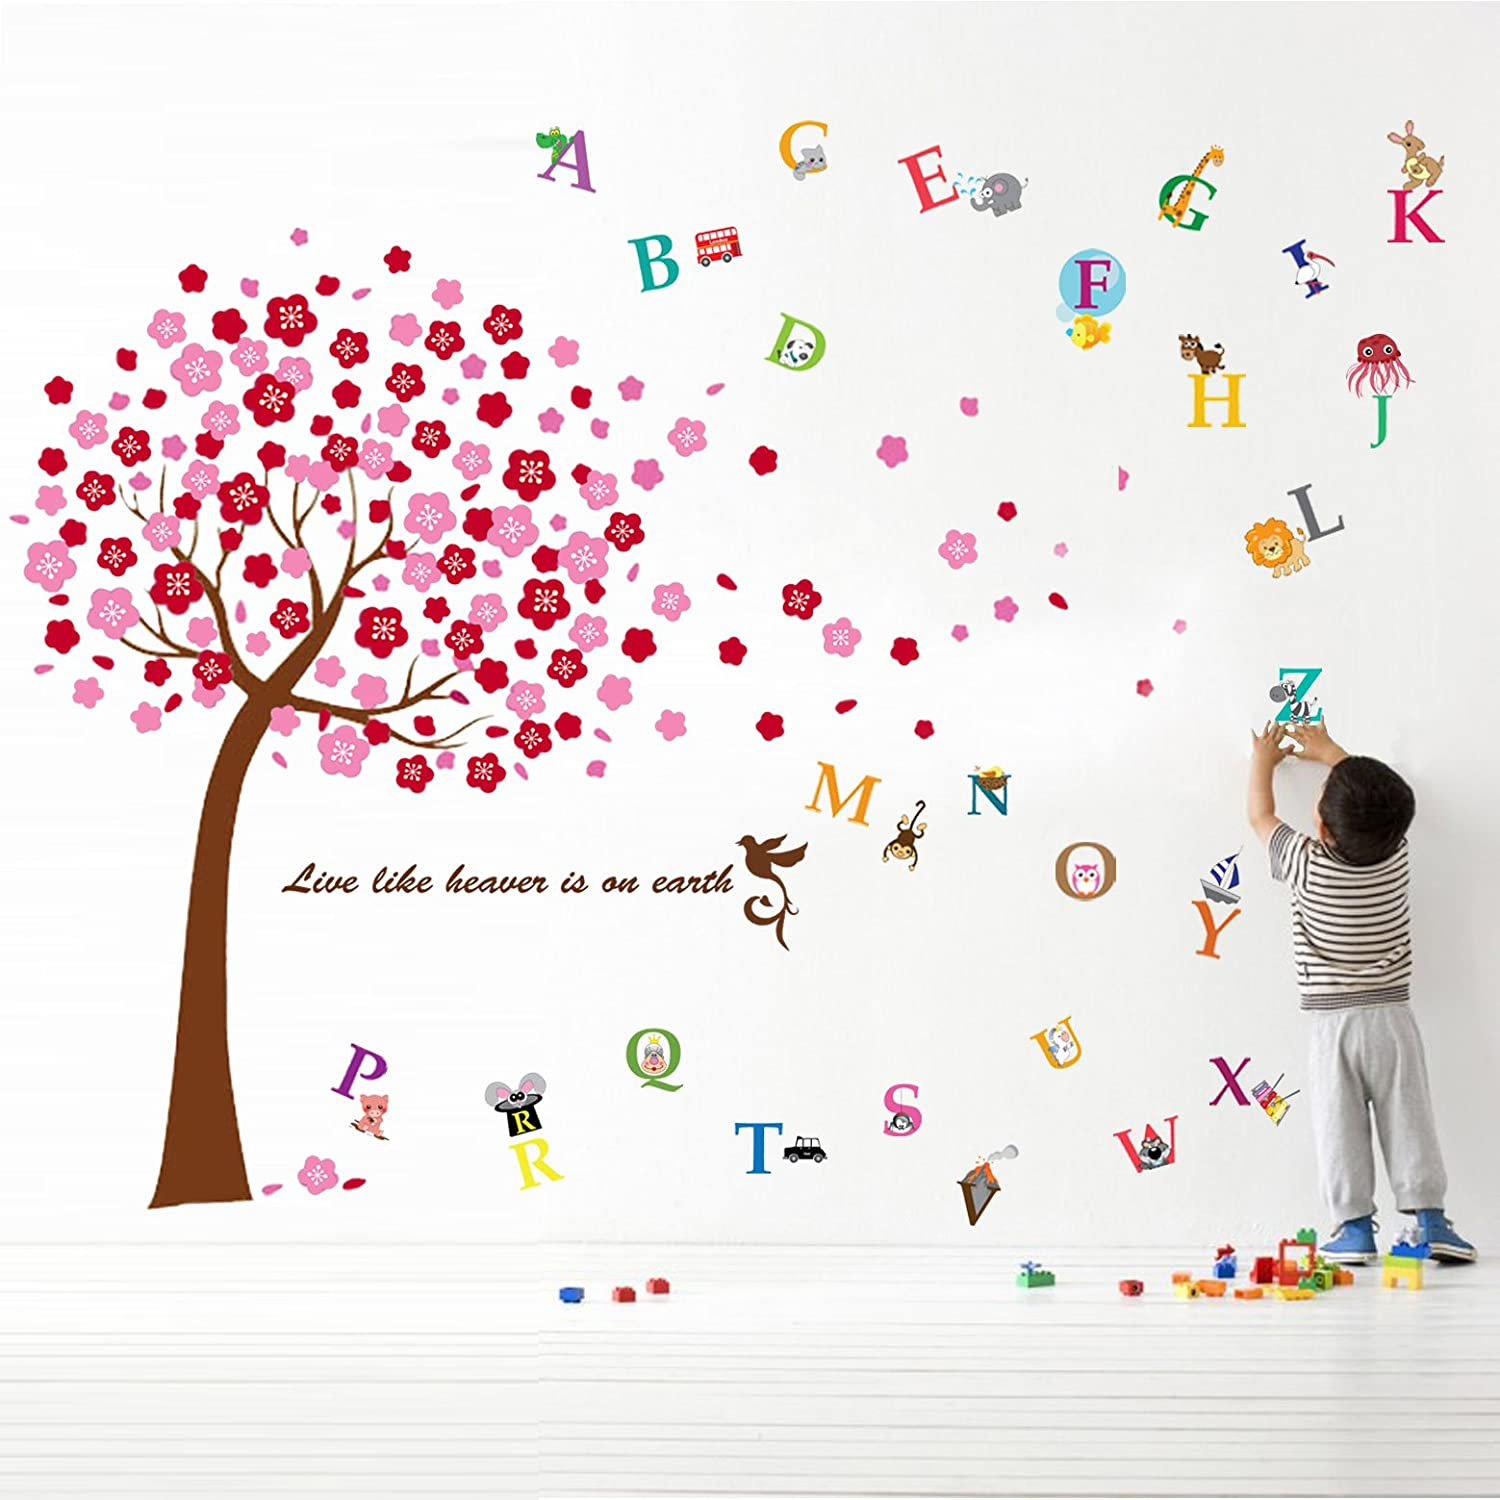 Pink Walplus Wall Stickers Cherry Flower Blossom Removable Self-Adhesive Mural Art Decals Vinyl Home Decoration DIY Living Bedroom Office D/écor Wallpaper Kids Room Gift